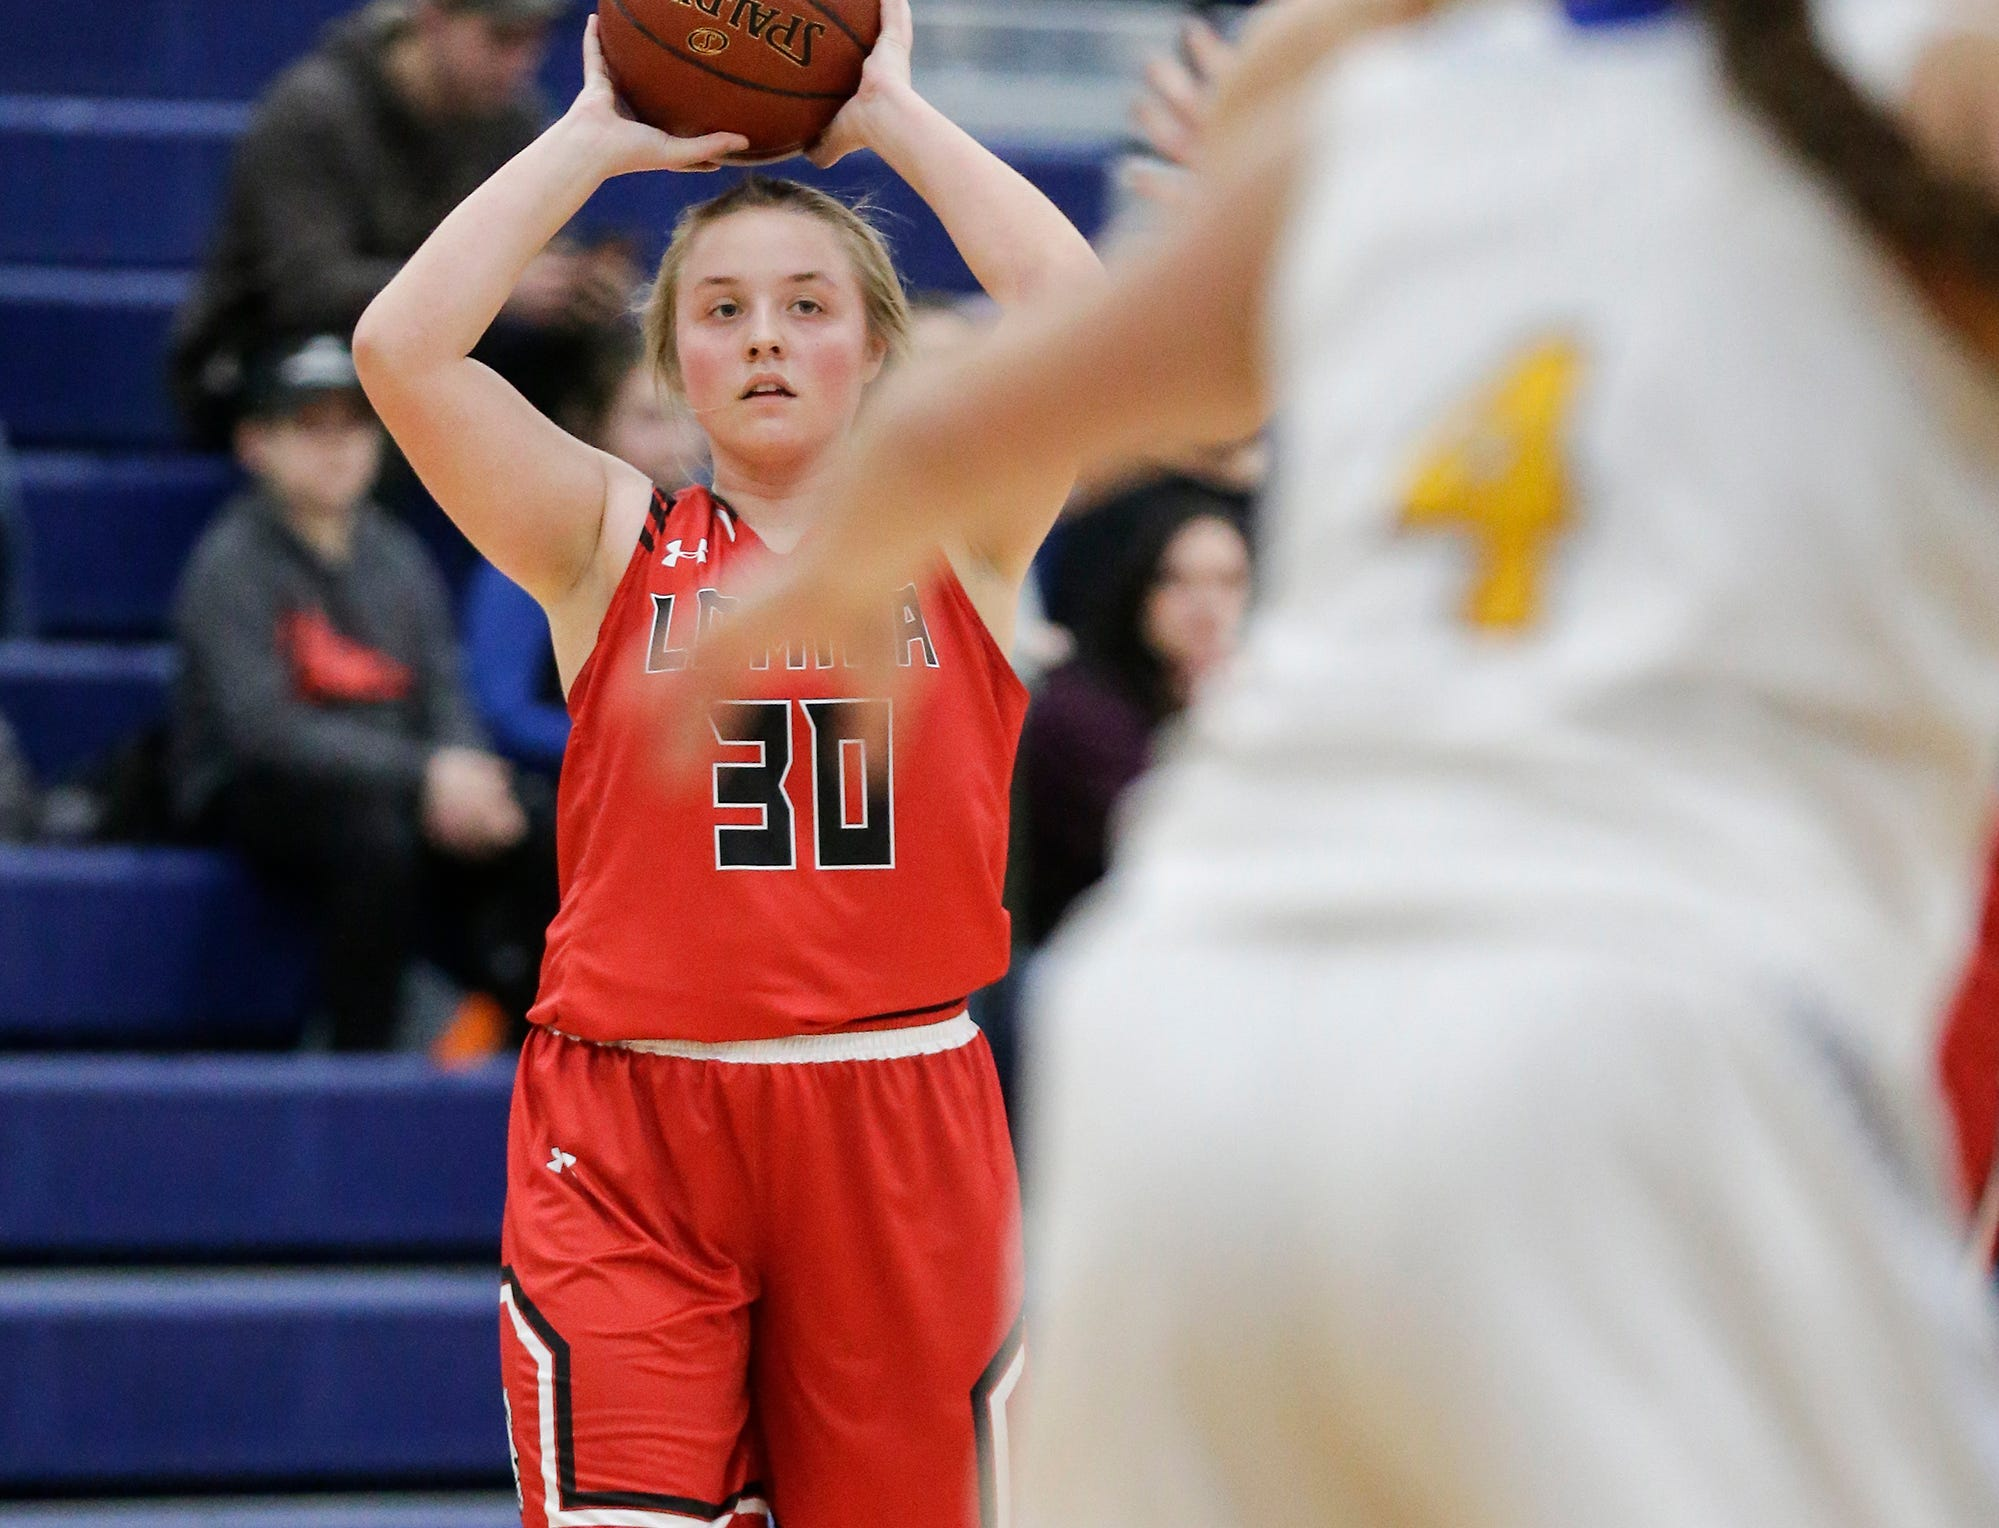 Lomira High School girls basketball's Erin Ries looks to pass the ball against Campbellsport High School during their game Friday, December 28, 2018 in Campbellsport. Doug Raflik/USA TODAY NETWORK-Wisconsin